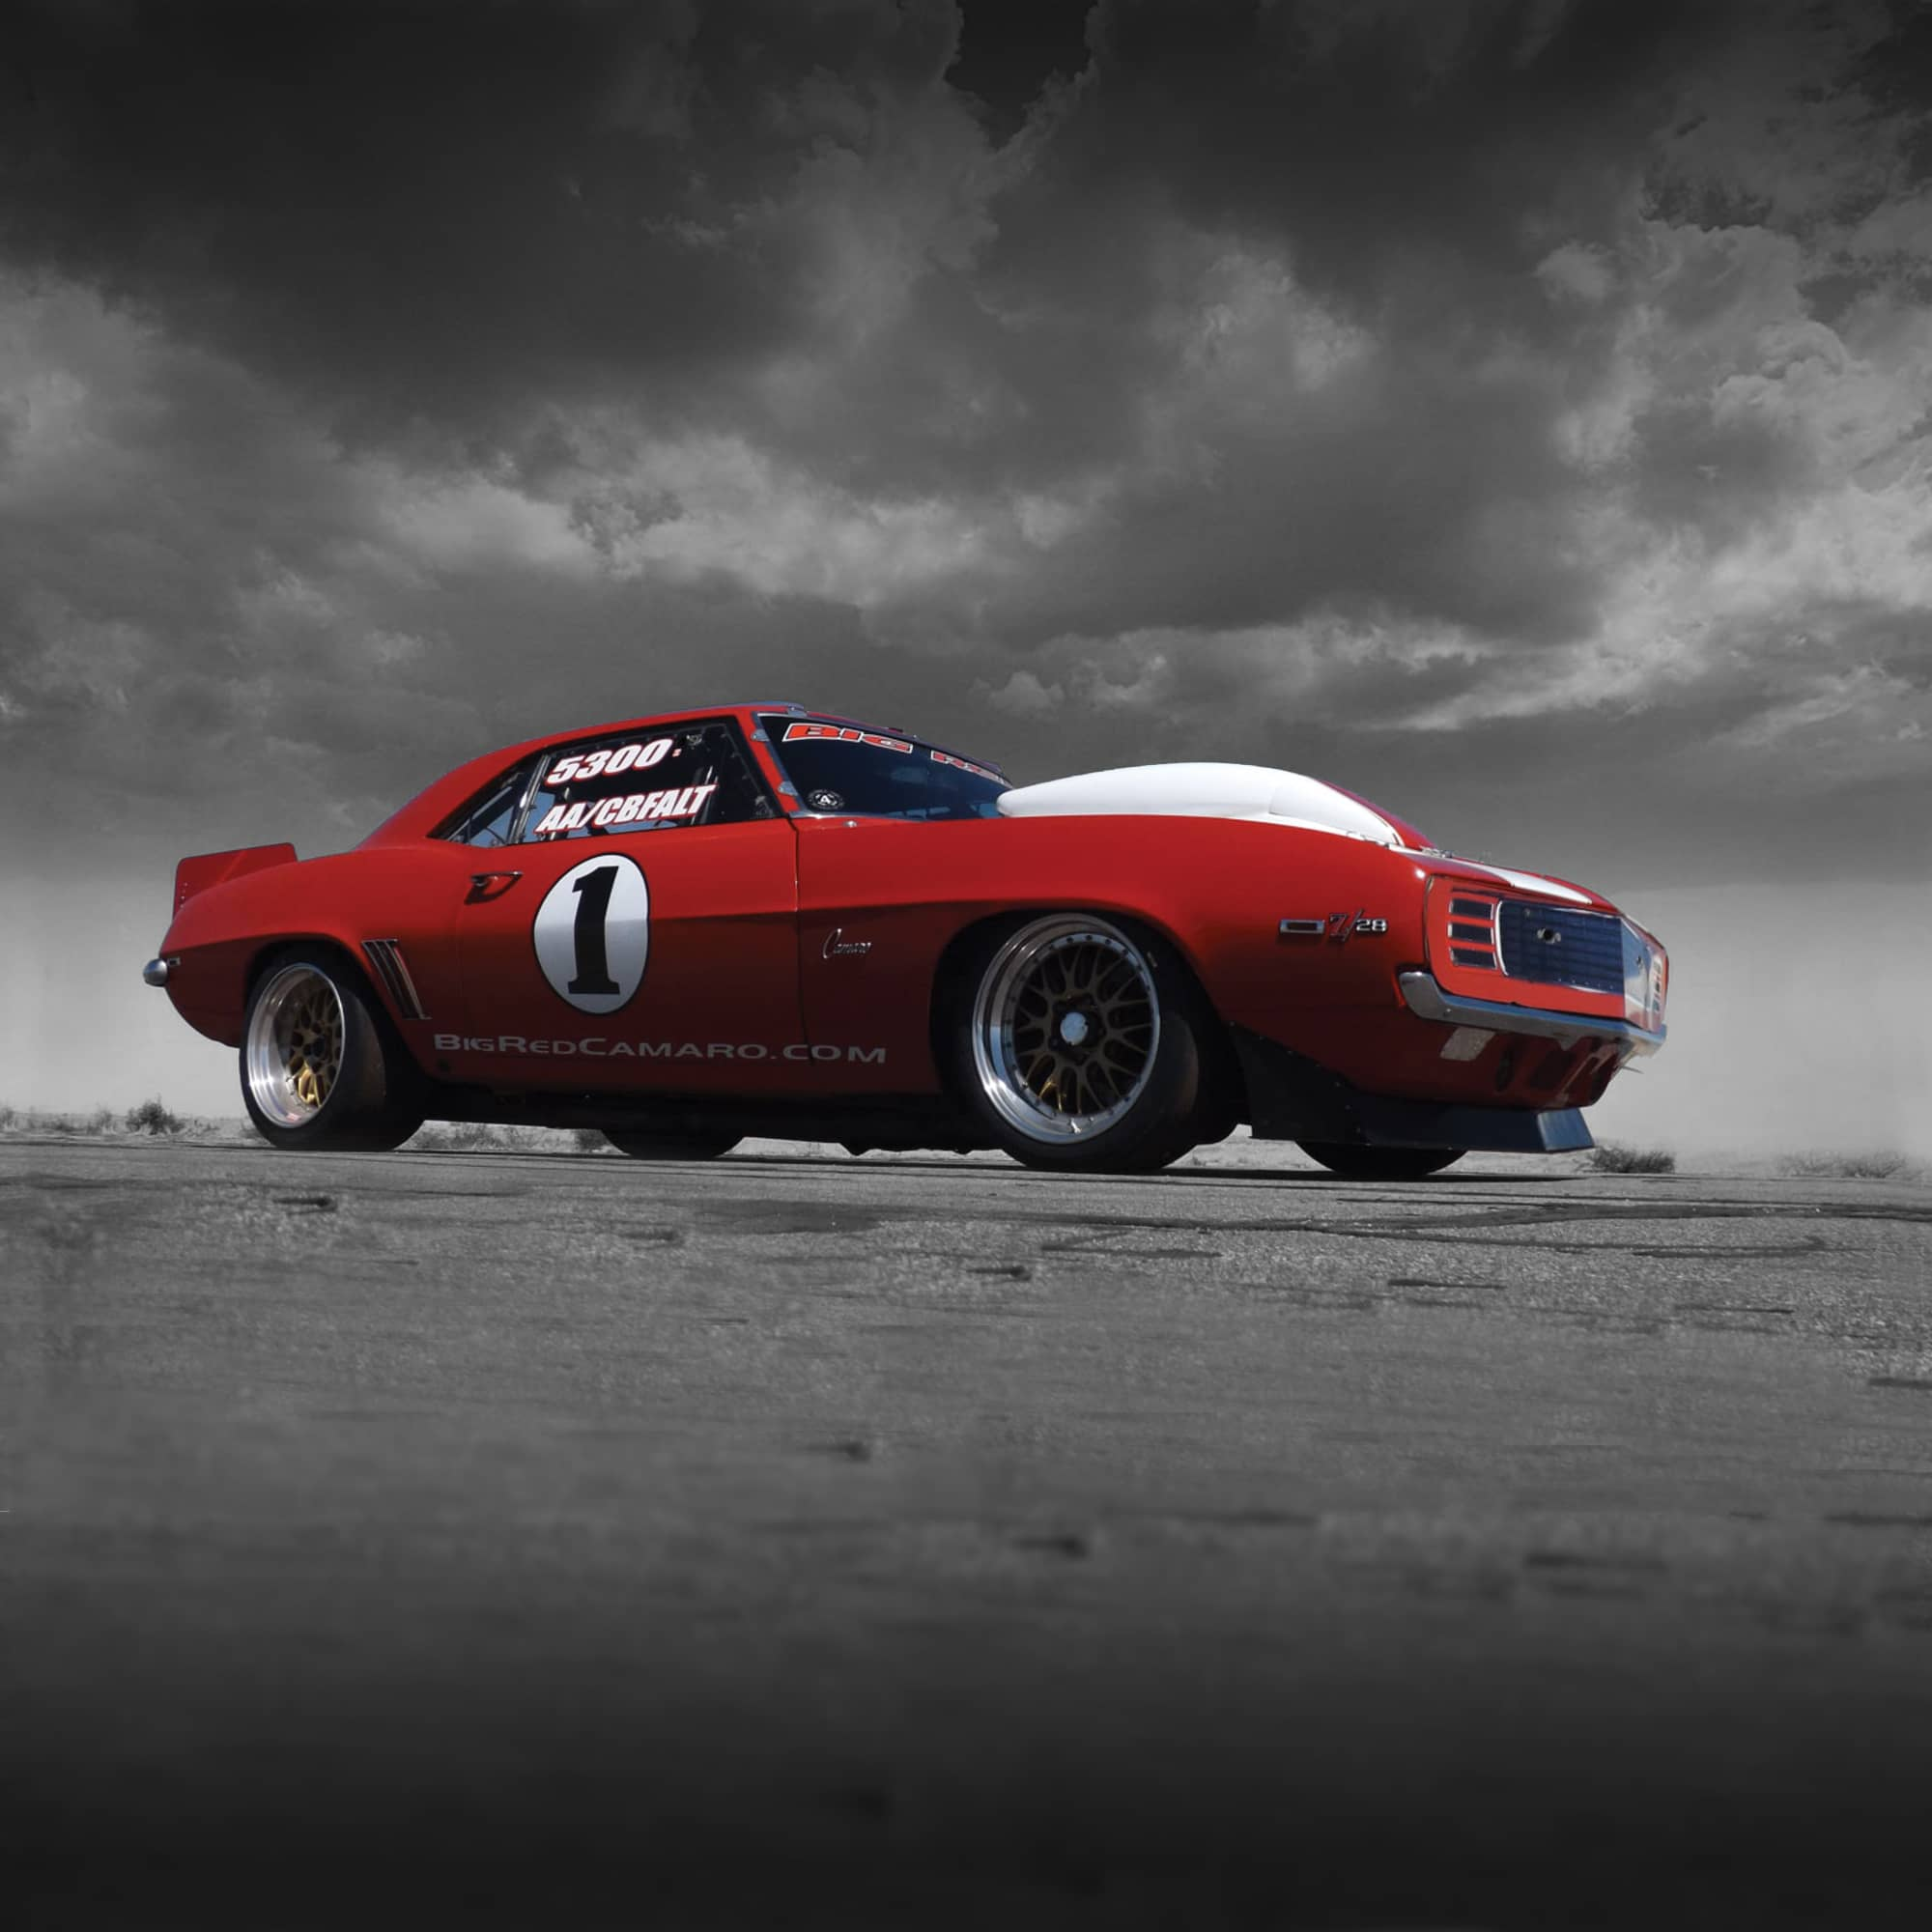 Big Red Camaro Front Side Beauty Shot with Grey Background